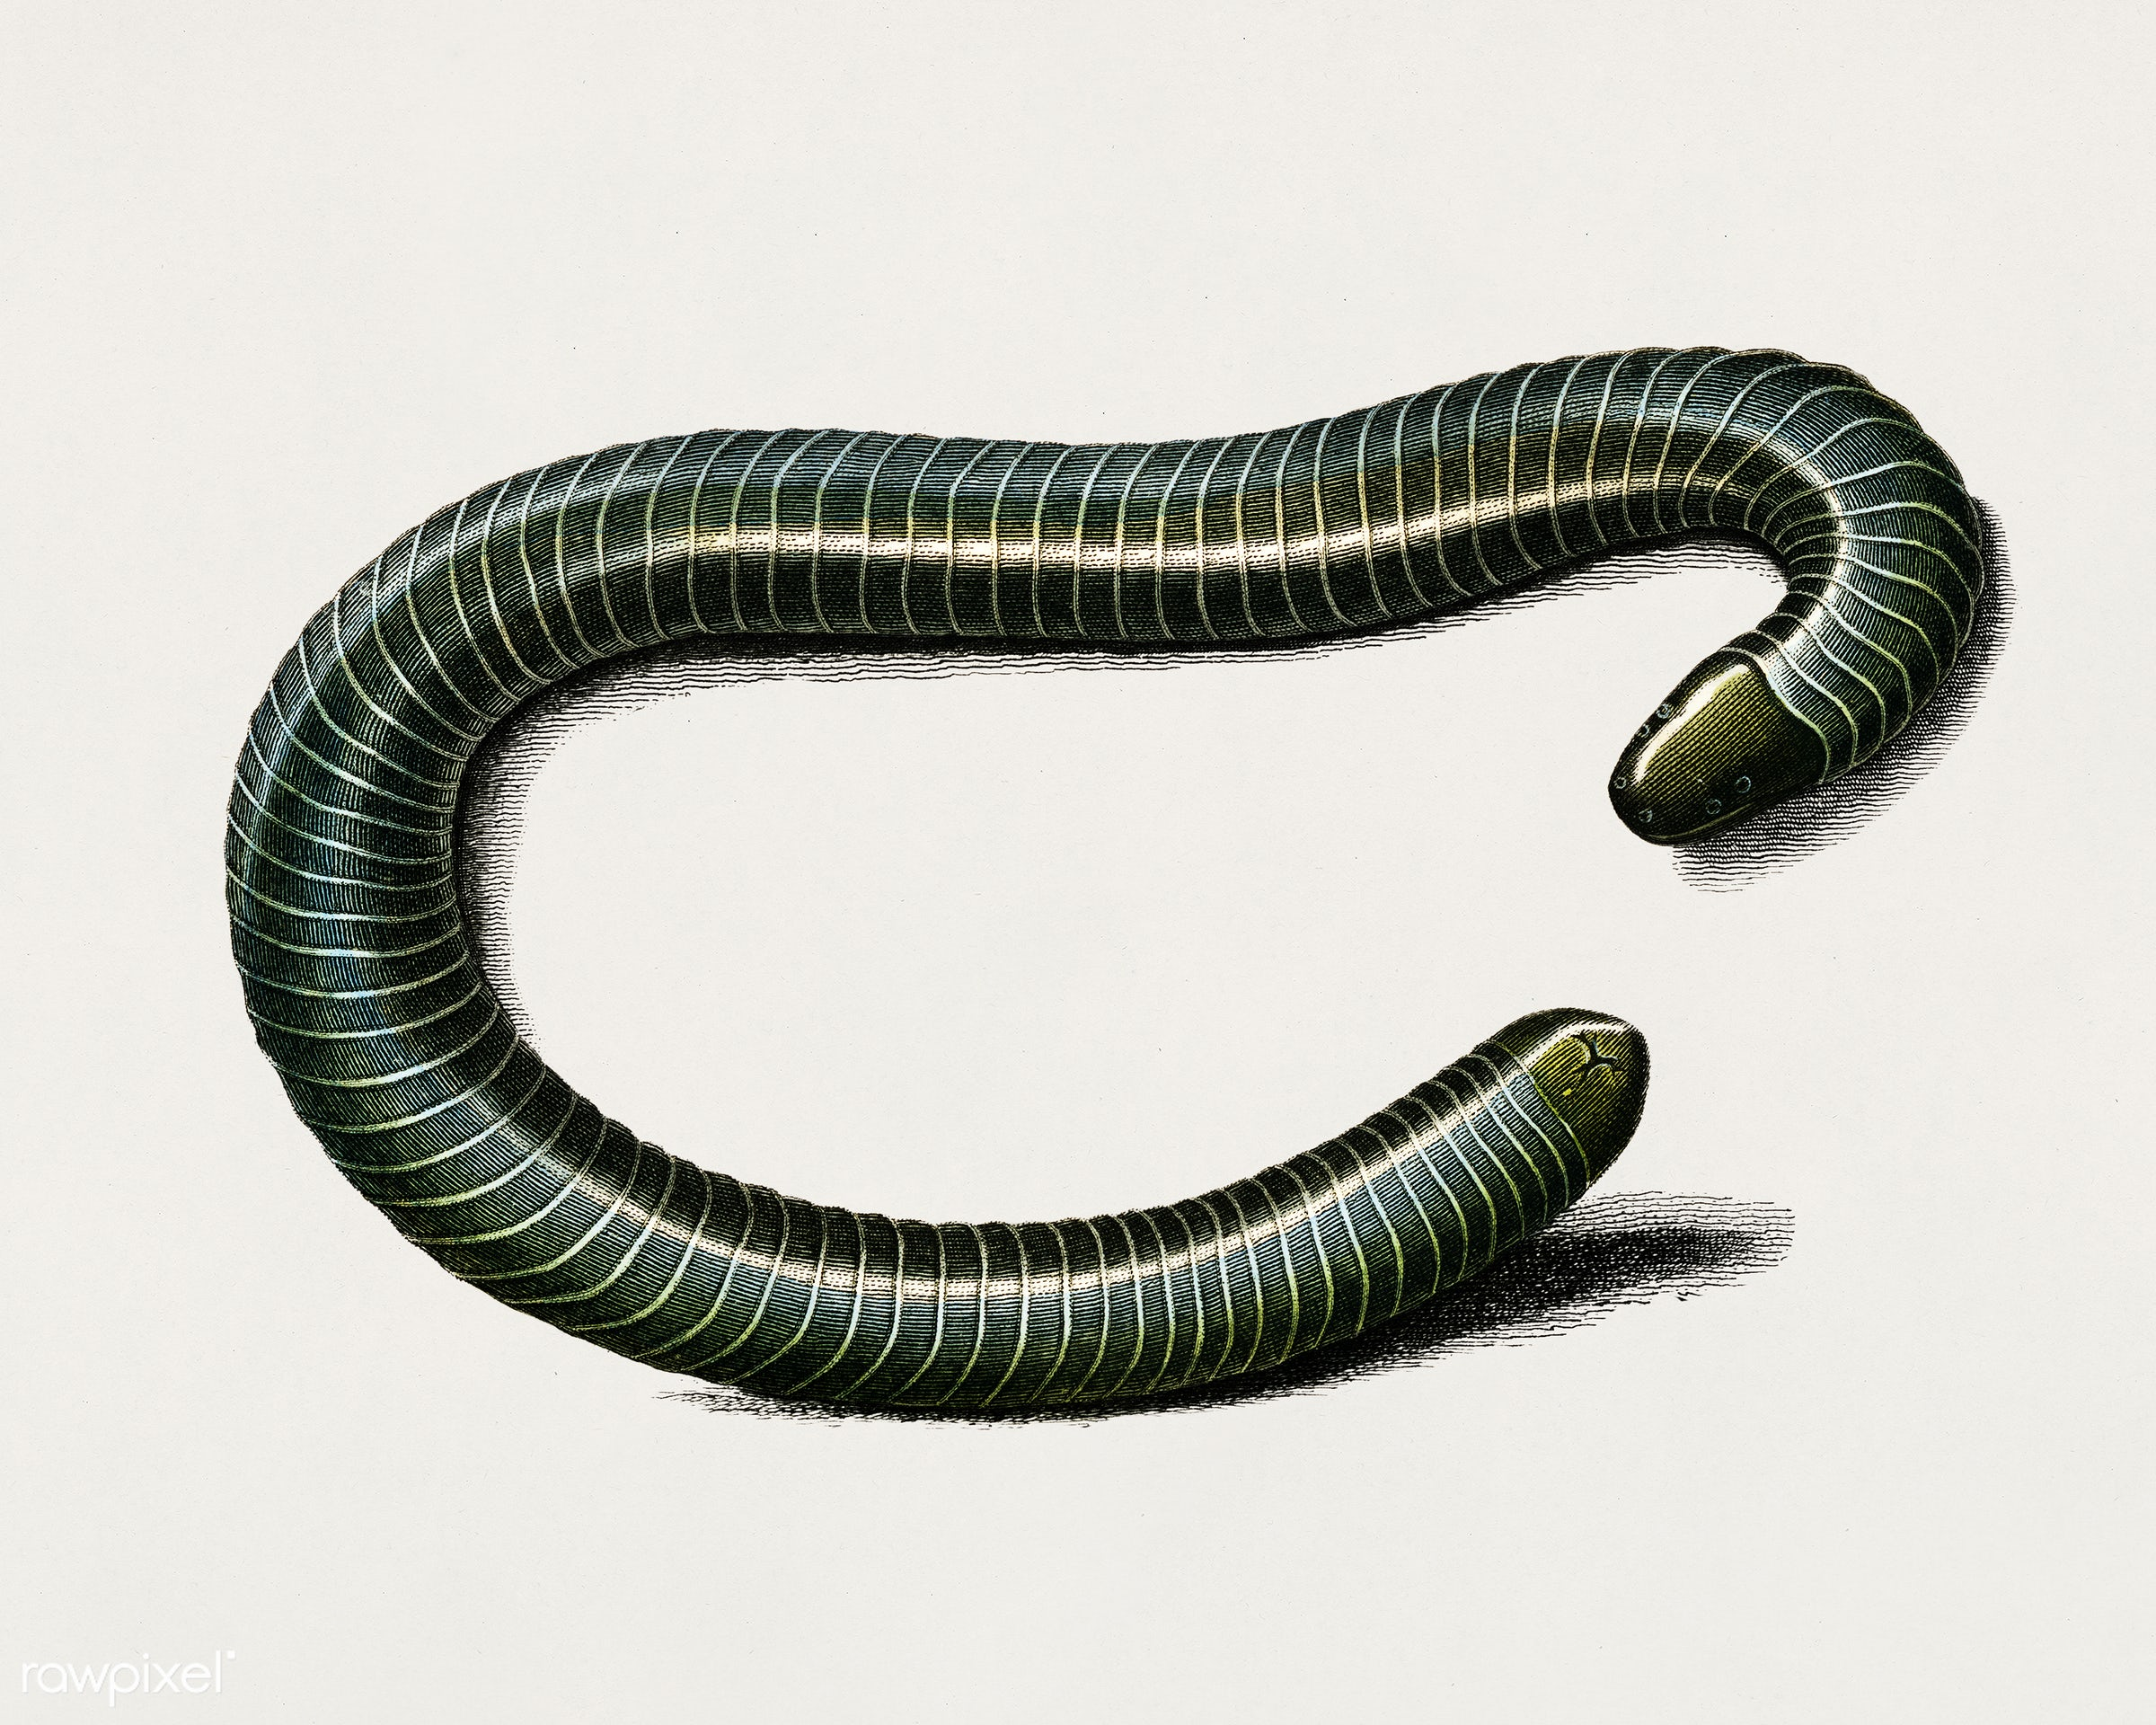 Ringed caecilian (Siphonops annulatus) illustrated by Charles Dessalines D' Orbigny (1806-1876). Digitally enhanced from...